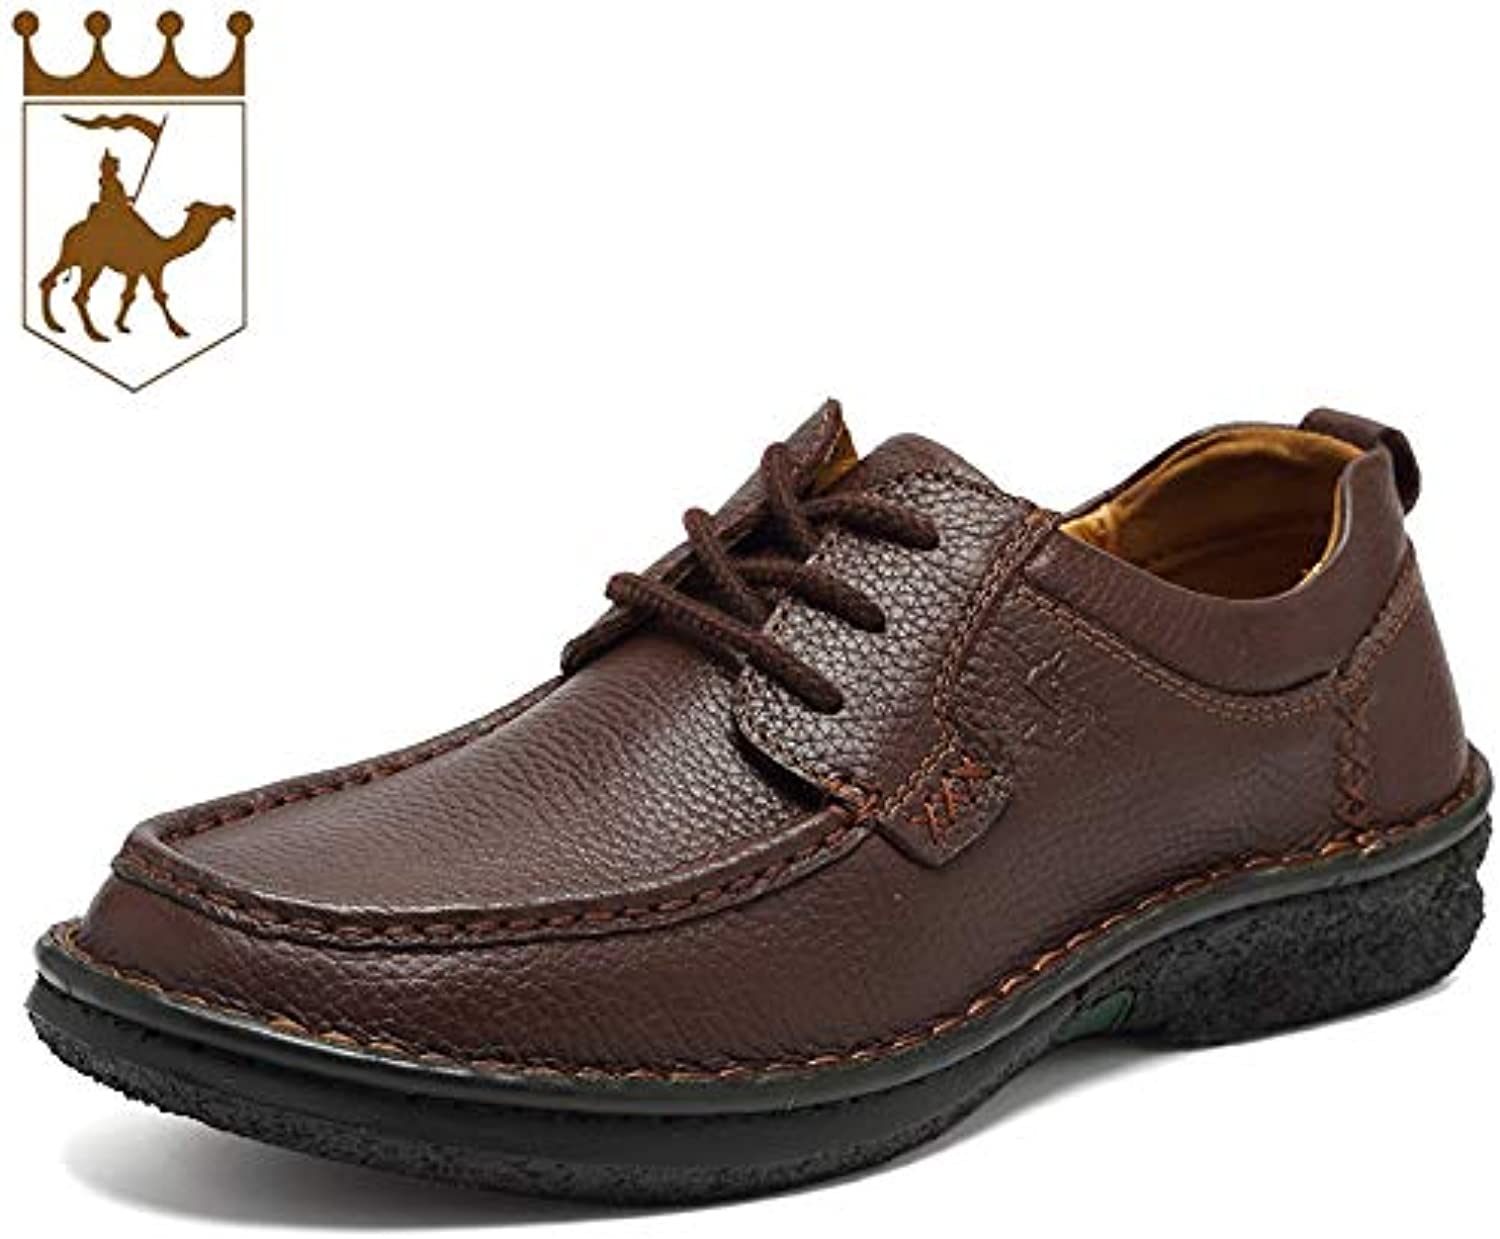 LOVDRAM Boots Men's Autumn And Winter Leather Men'S shoes Leather Lace Men'S Handmade shoes Fashion Casual shoes Men'S Fashion